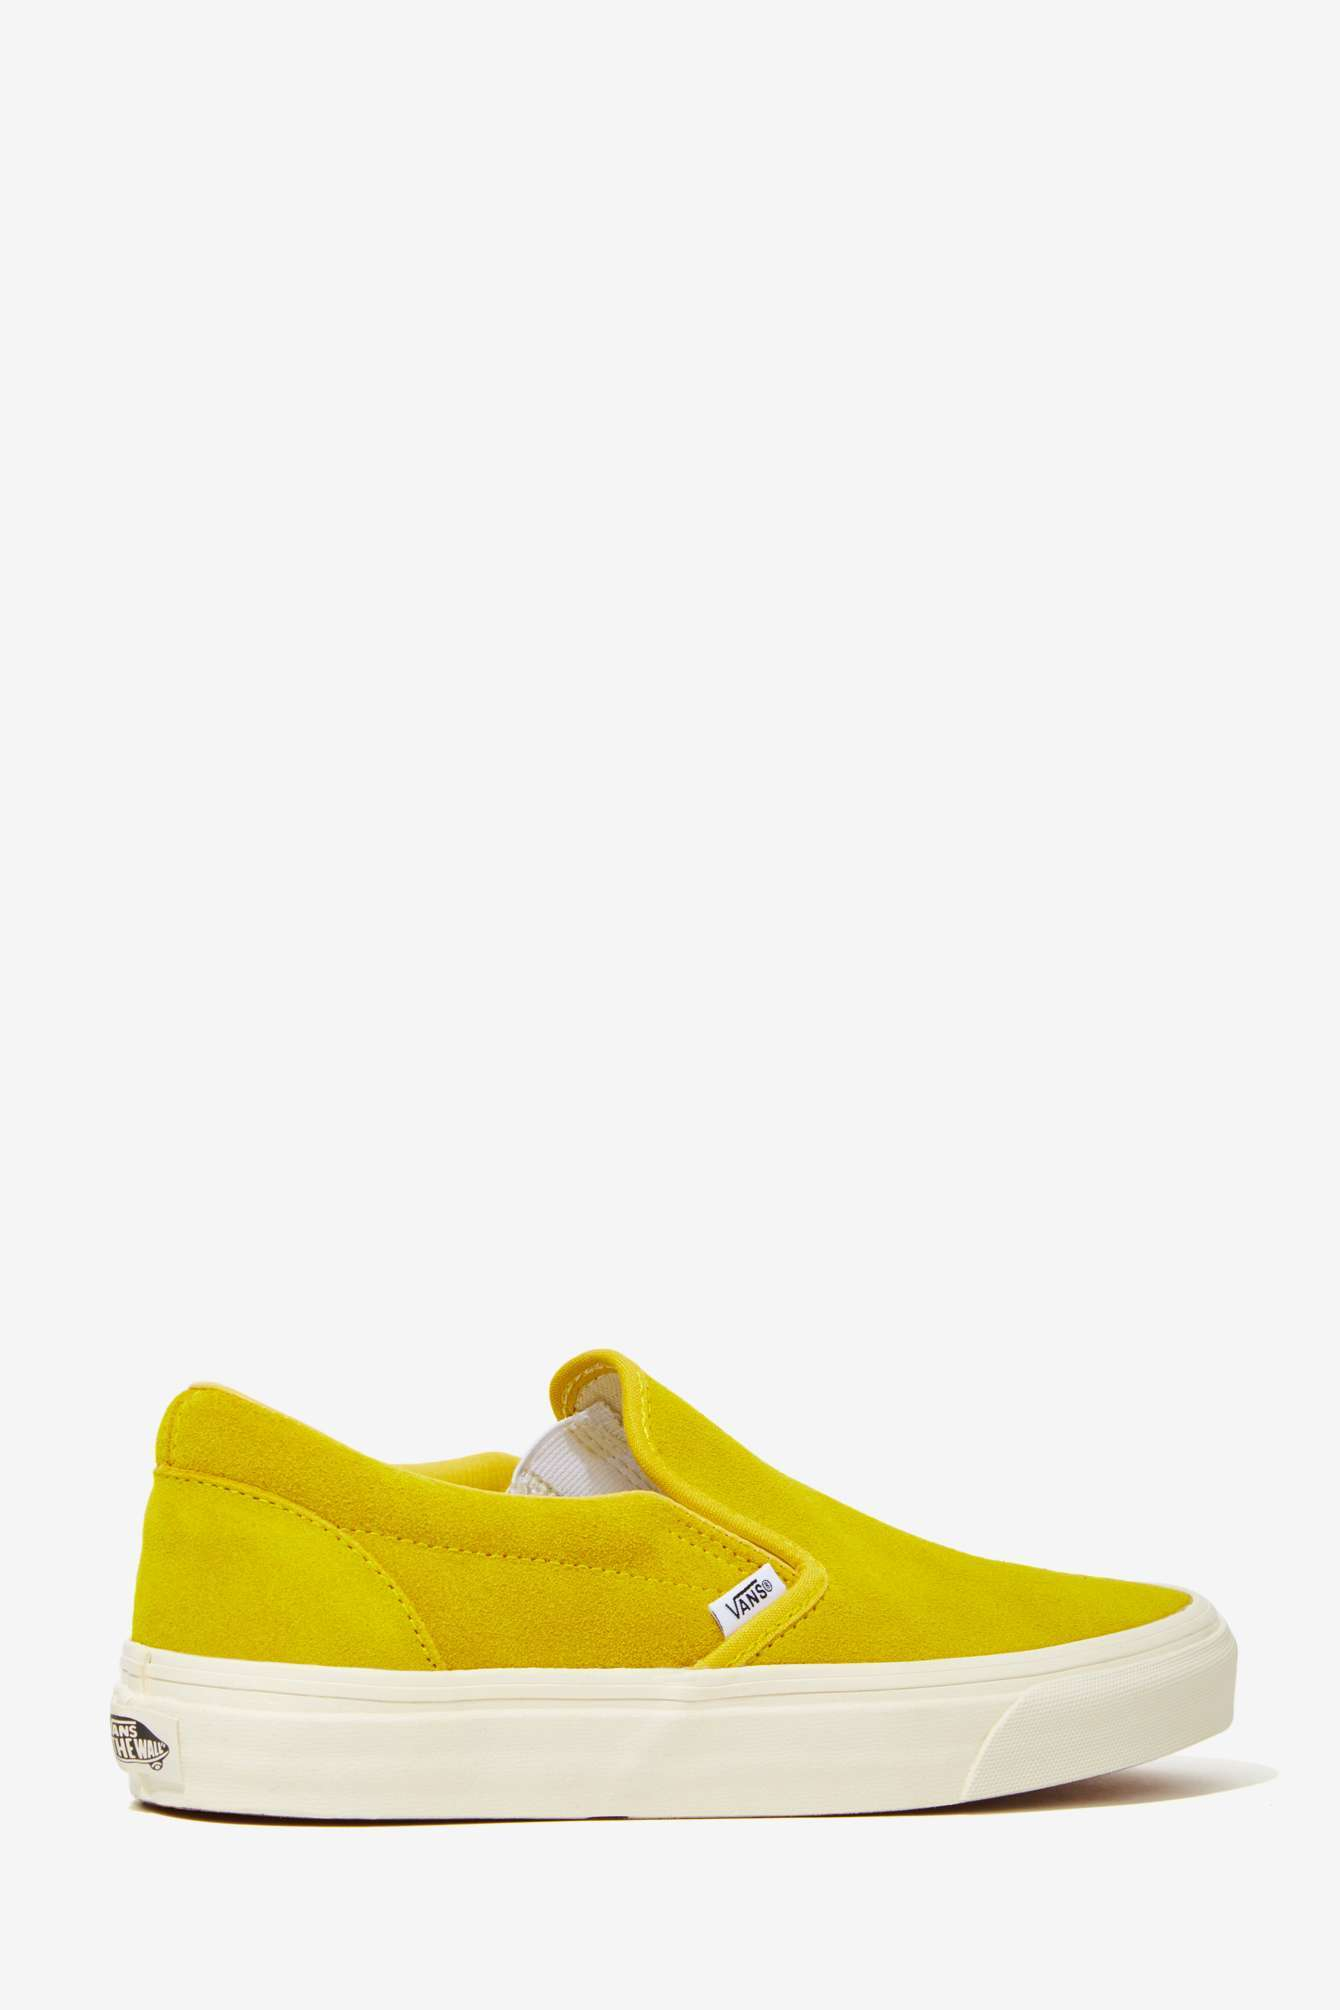 c3af7a5494e393 Lyst - Nasty Gal Vans Classic Slip-On Sneaker - Mustard Suede in Yellow